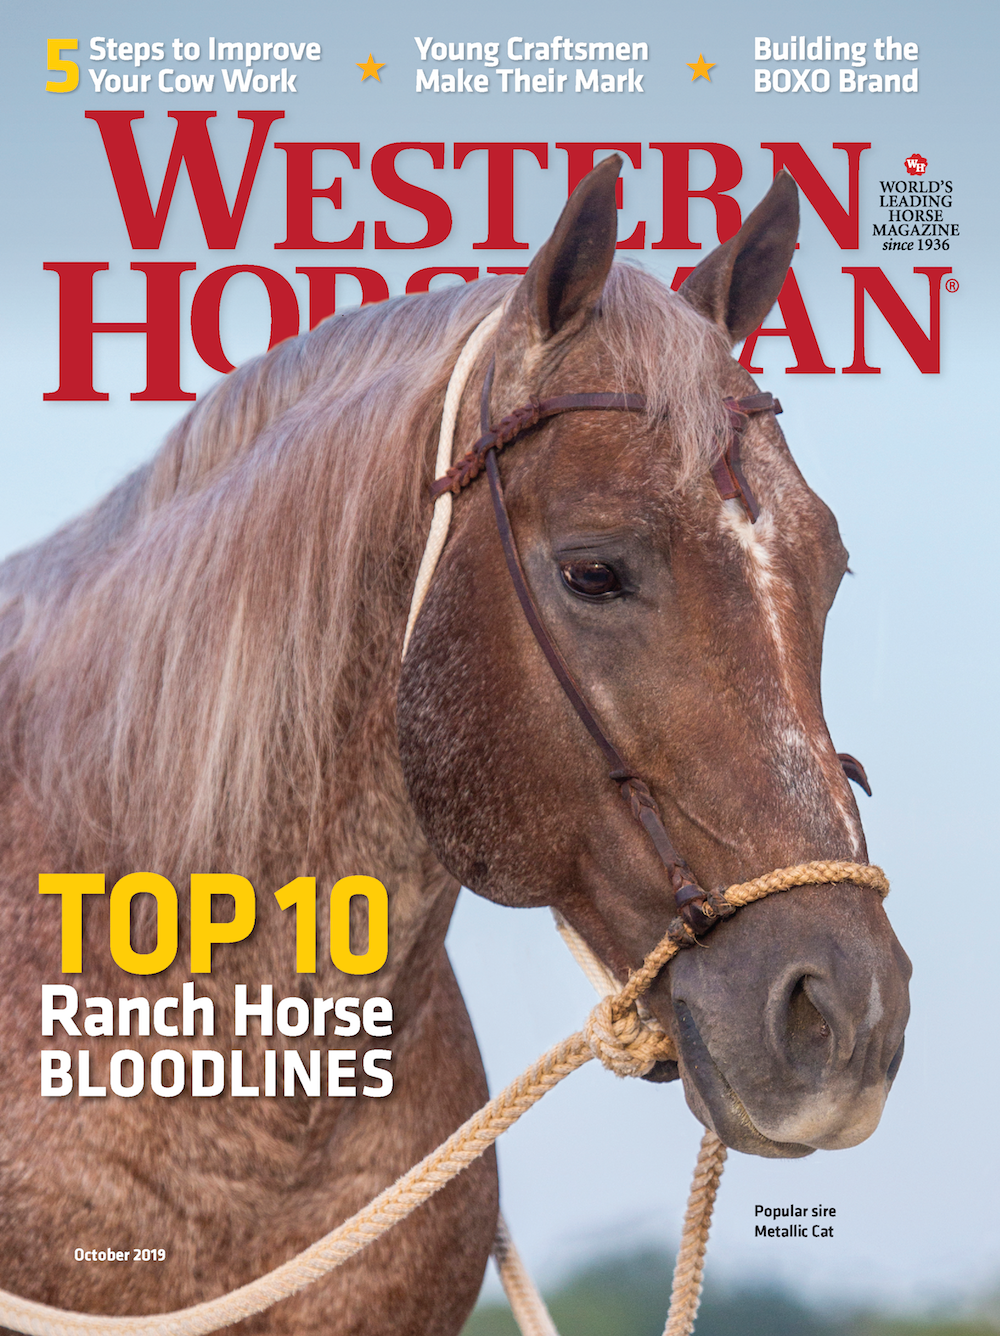 October 2019 issue of Western Horseman magazine cover